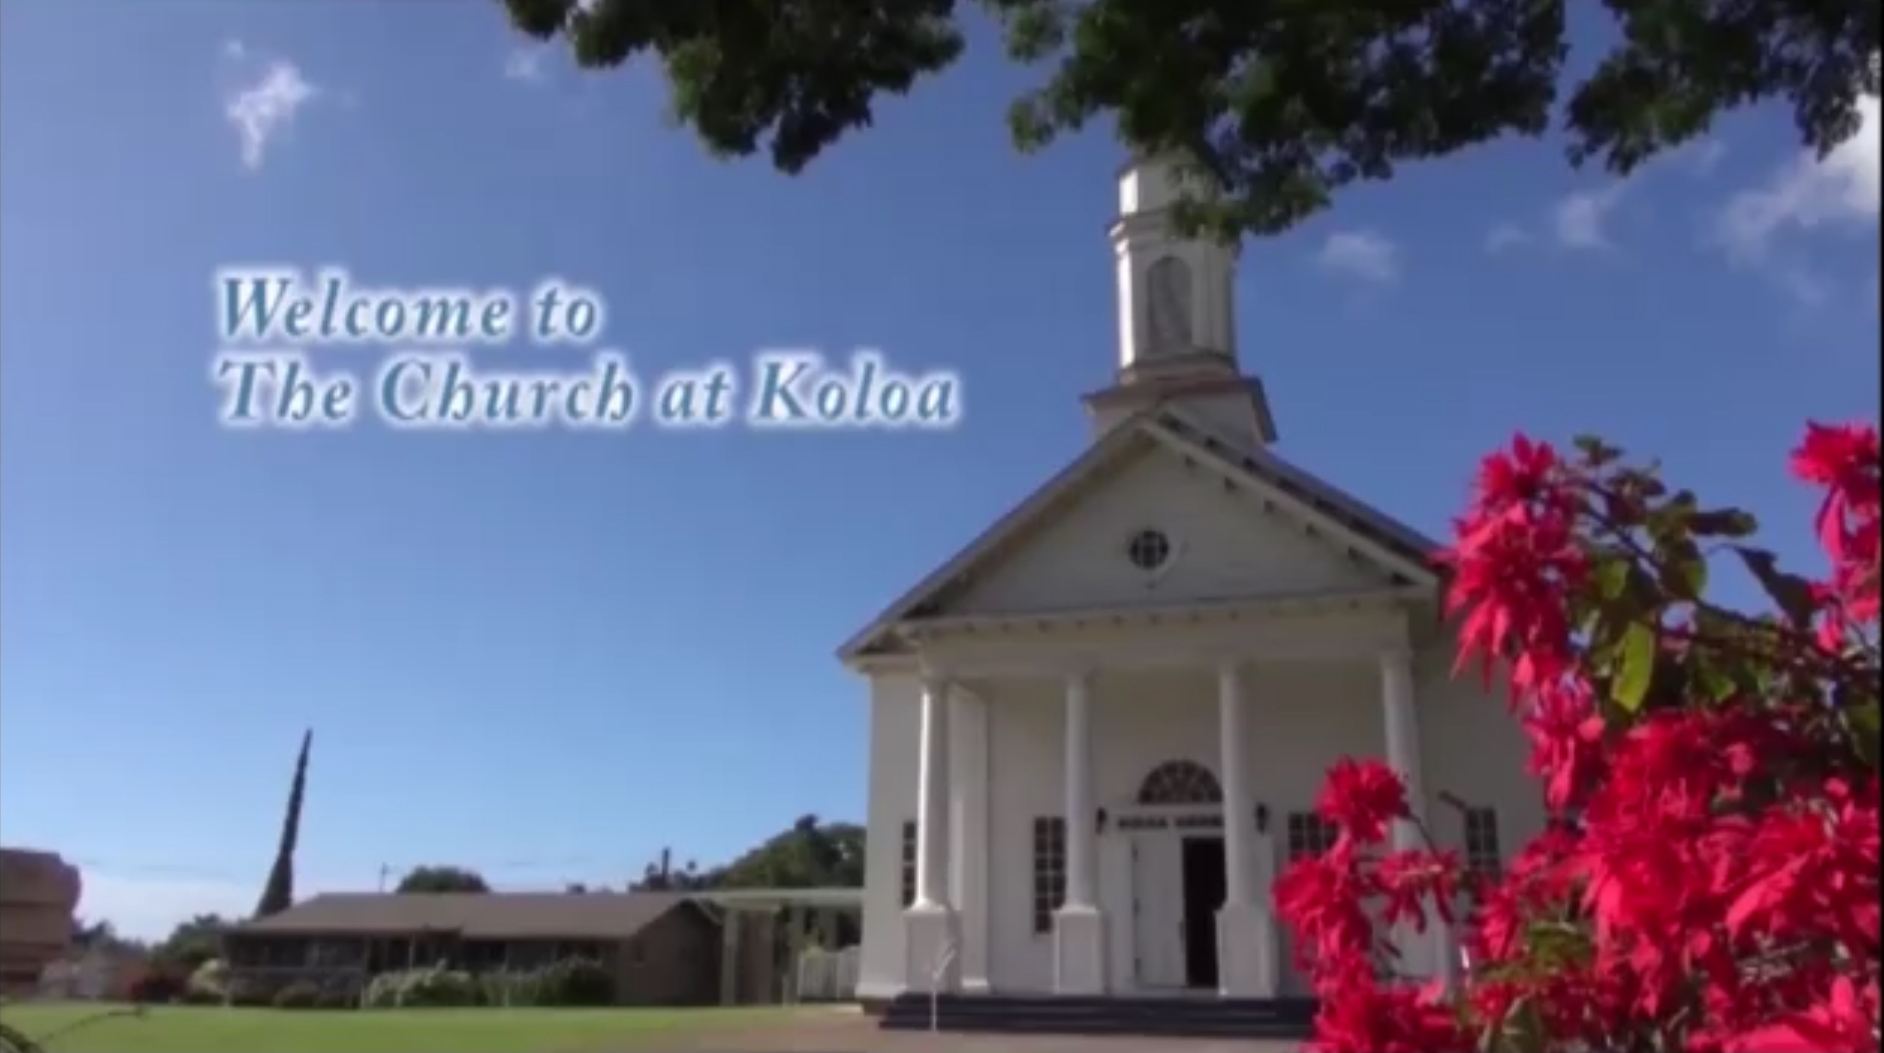 February 16, 2020 – The Church At Koloa